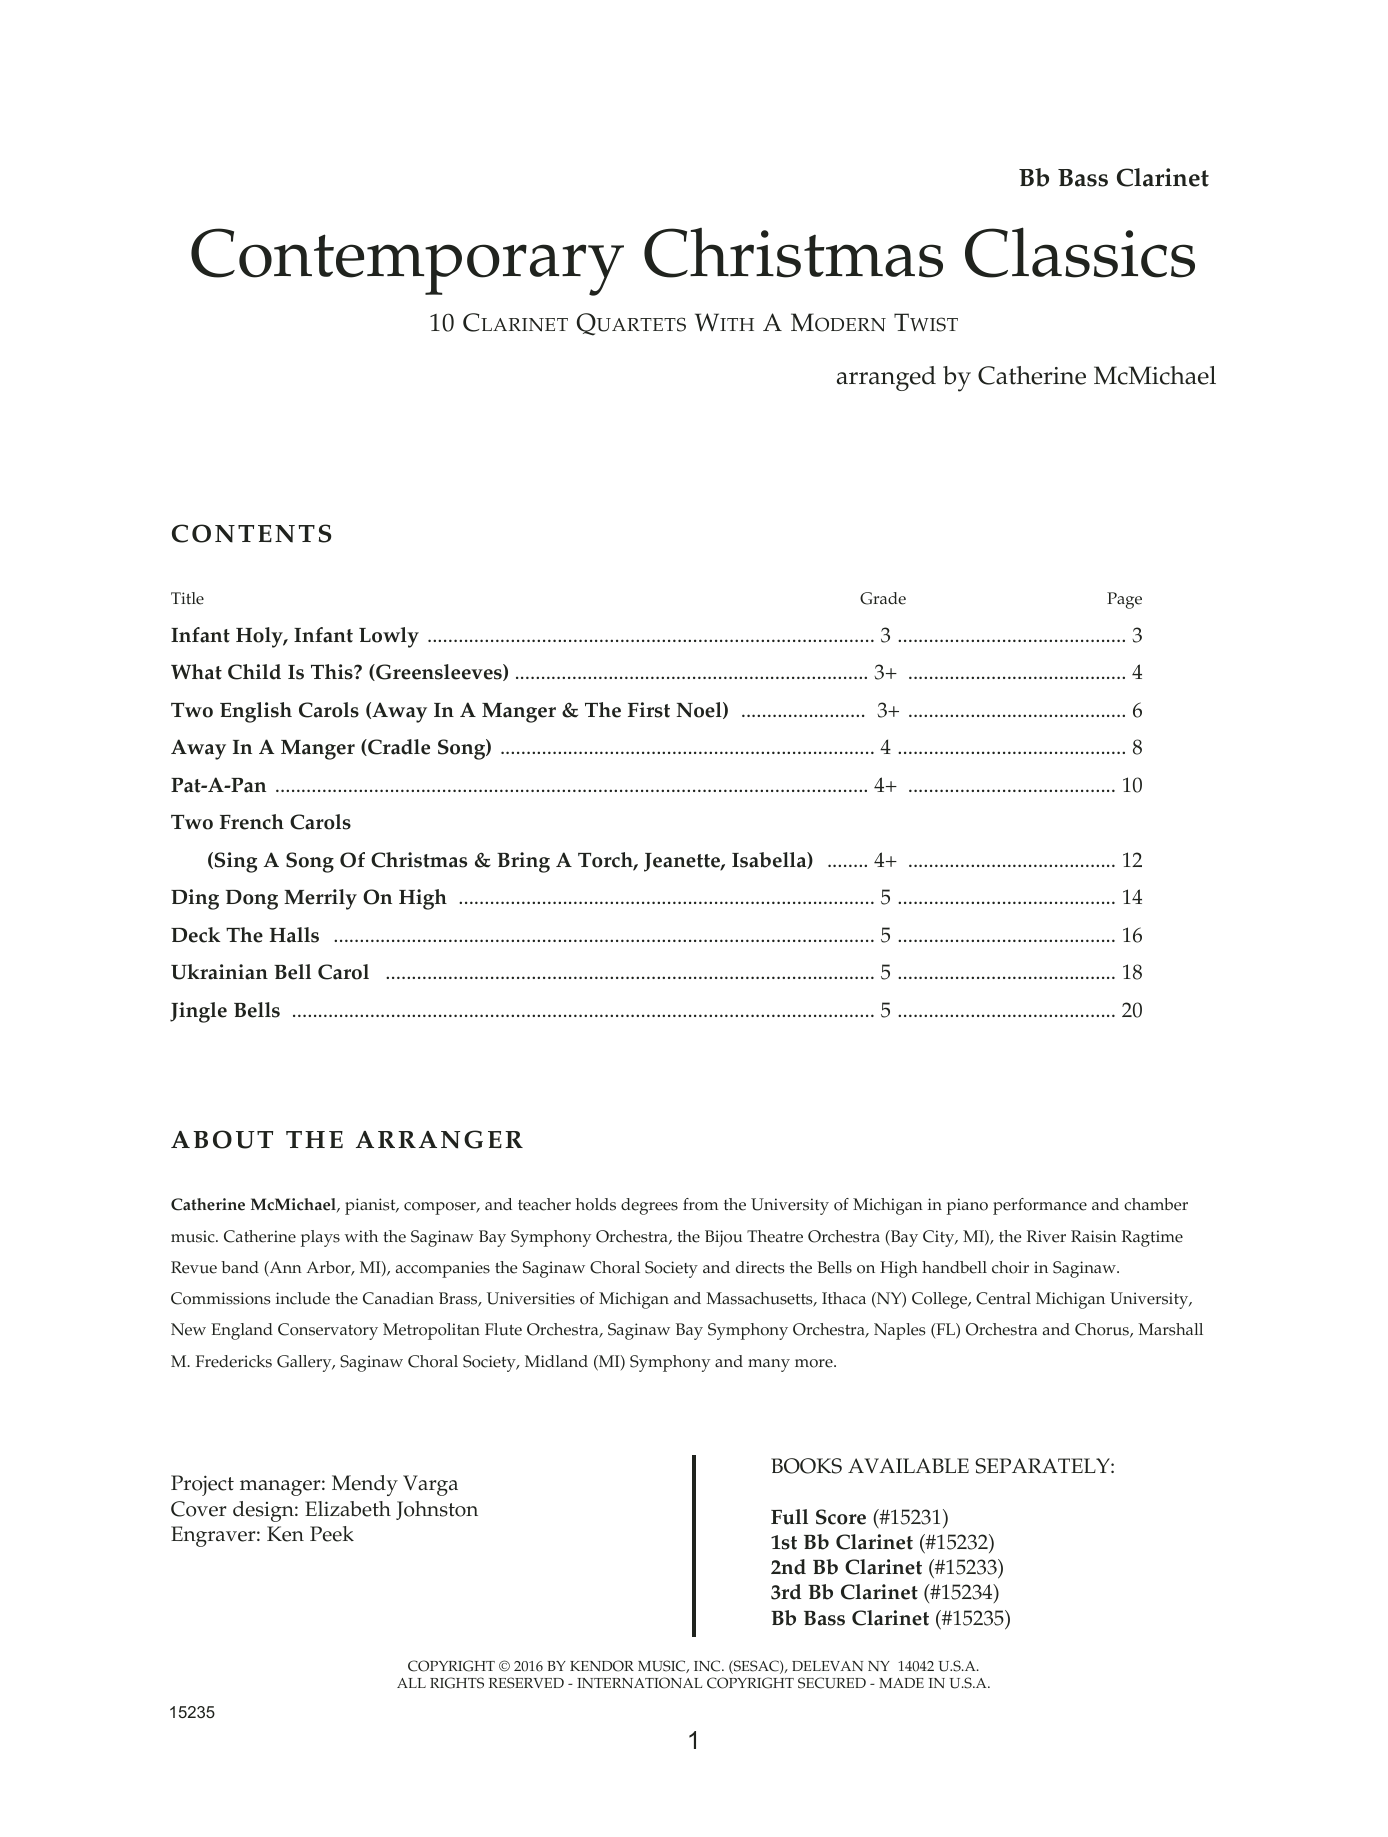 Contemporary Christmas Classics - Bb Bass Clarinet Sheet Music